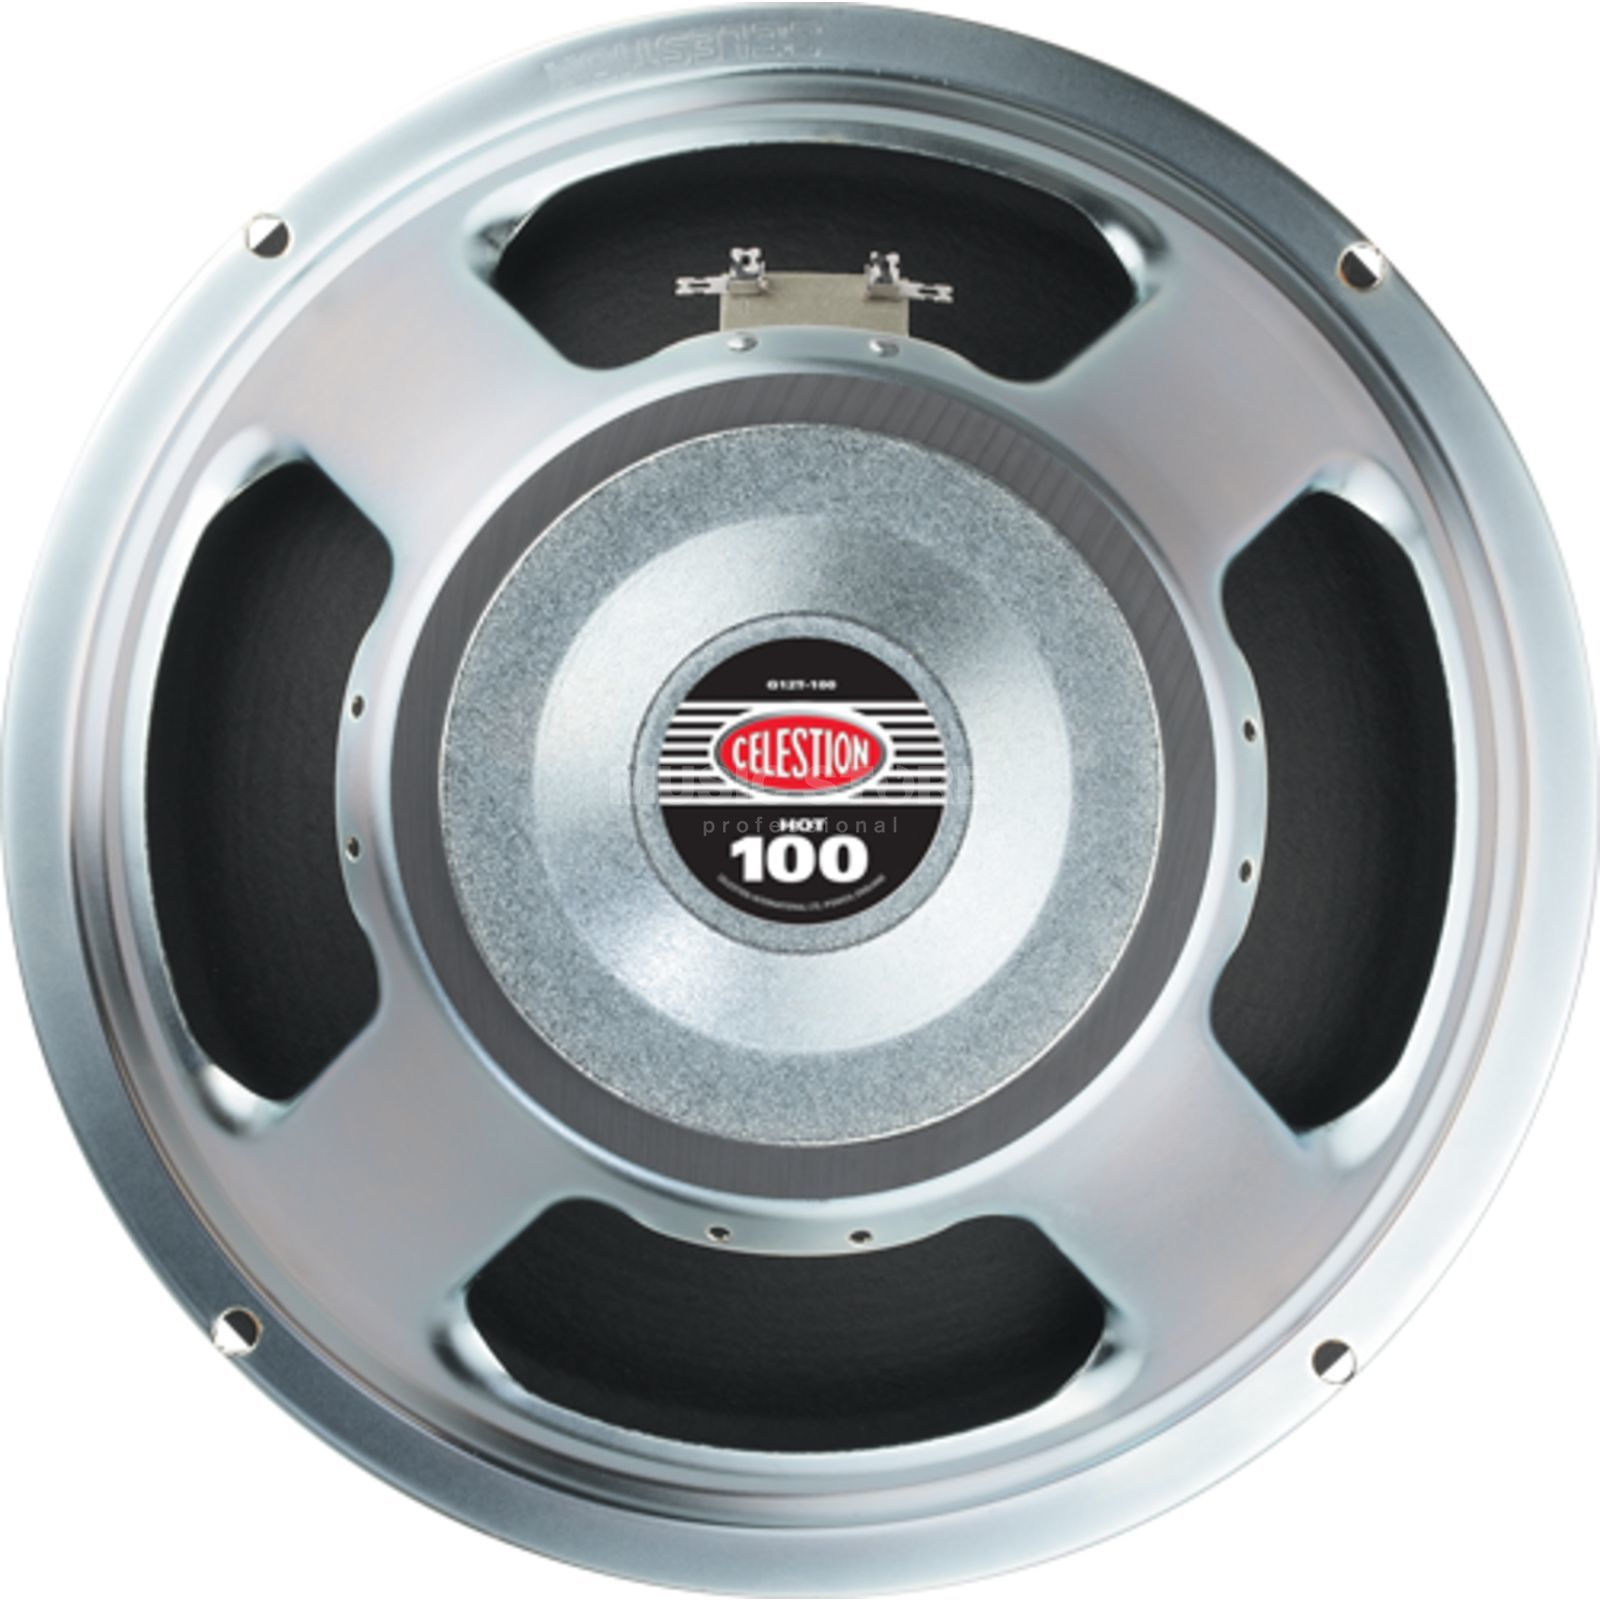 "Celestion G12T ""Hot 100"" 12"" Speaker 4 Ohm Produktbillede"